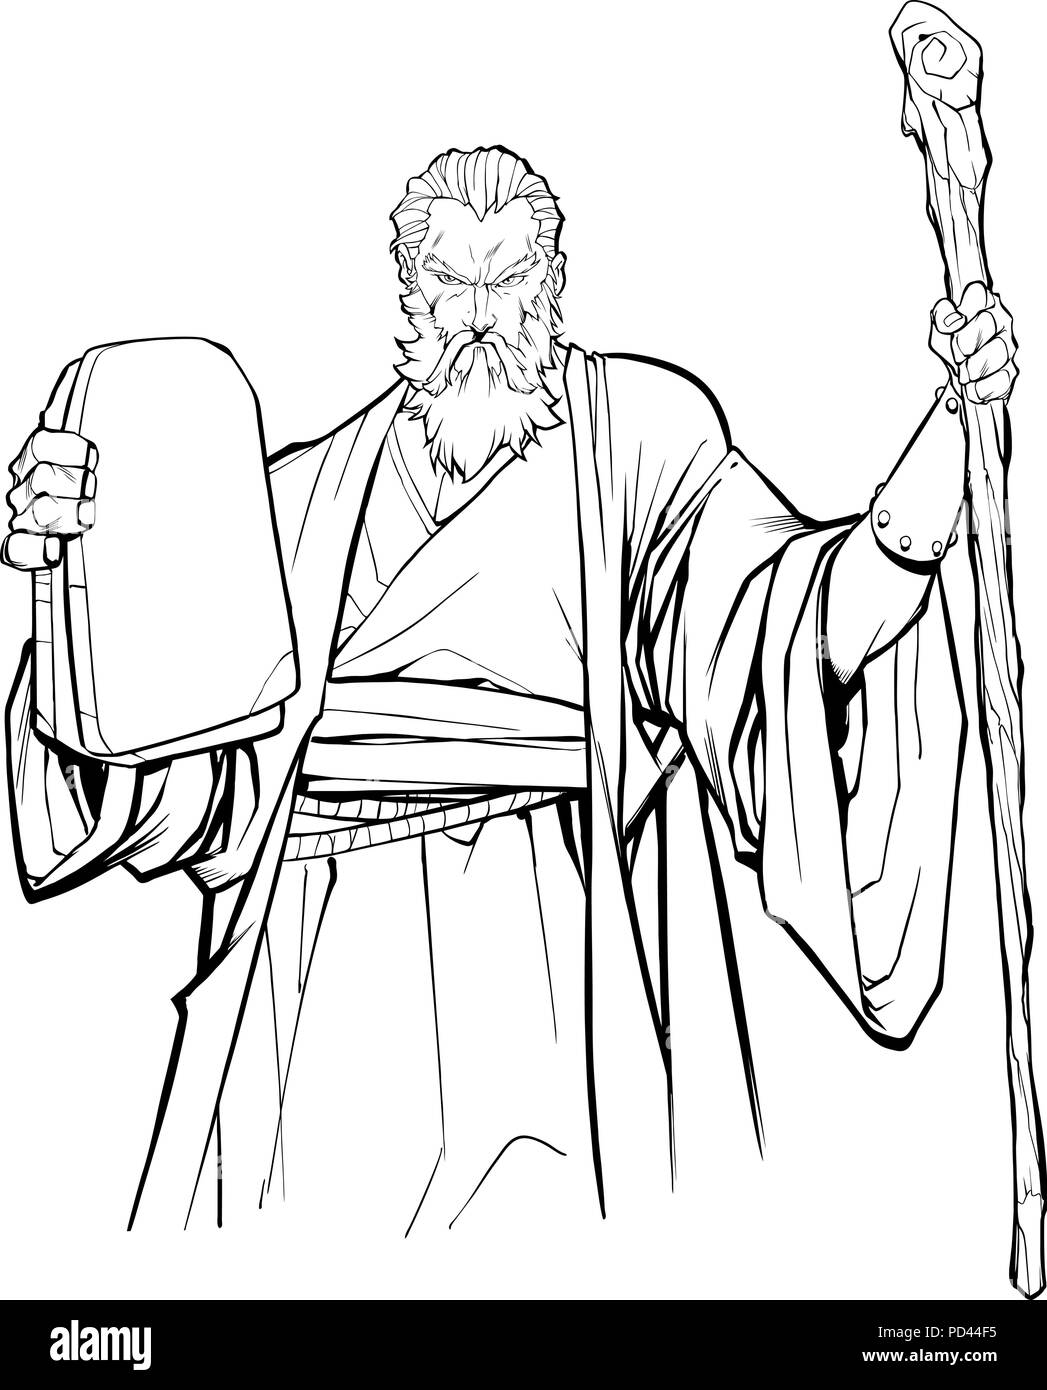 Moses Line Art - Stock Image